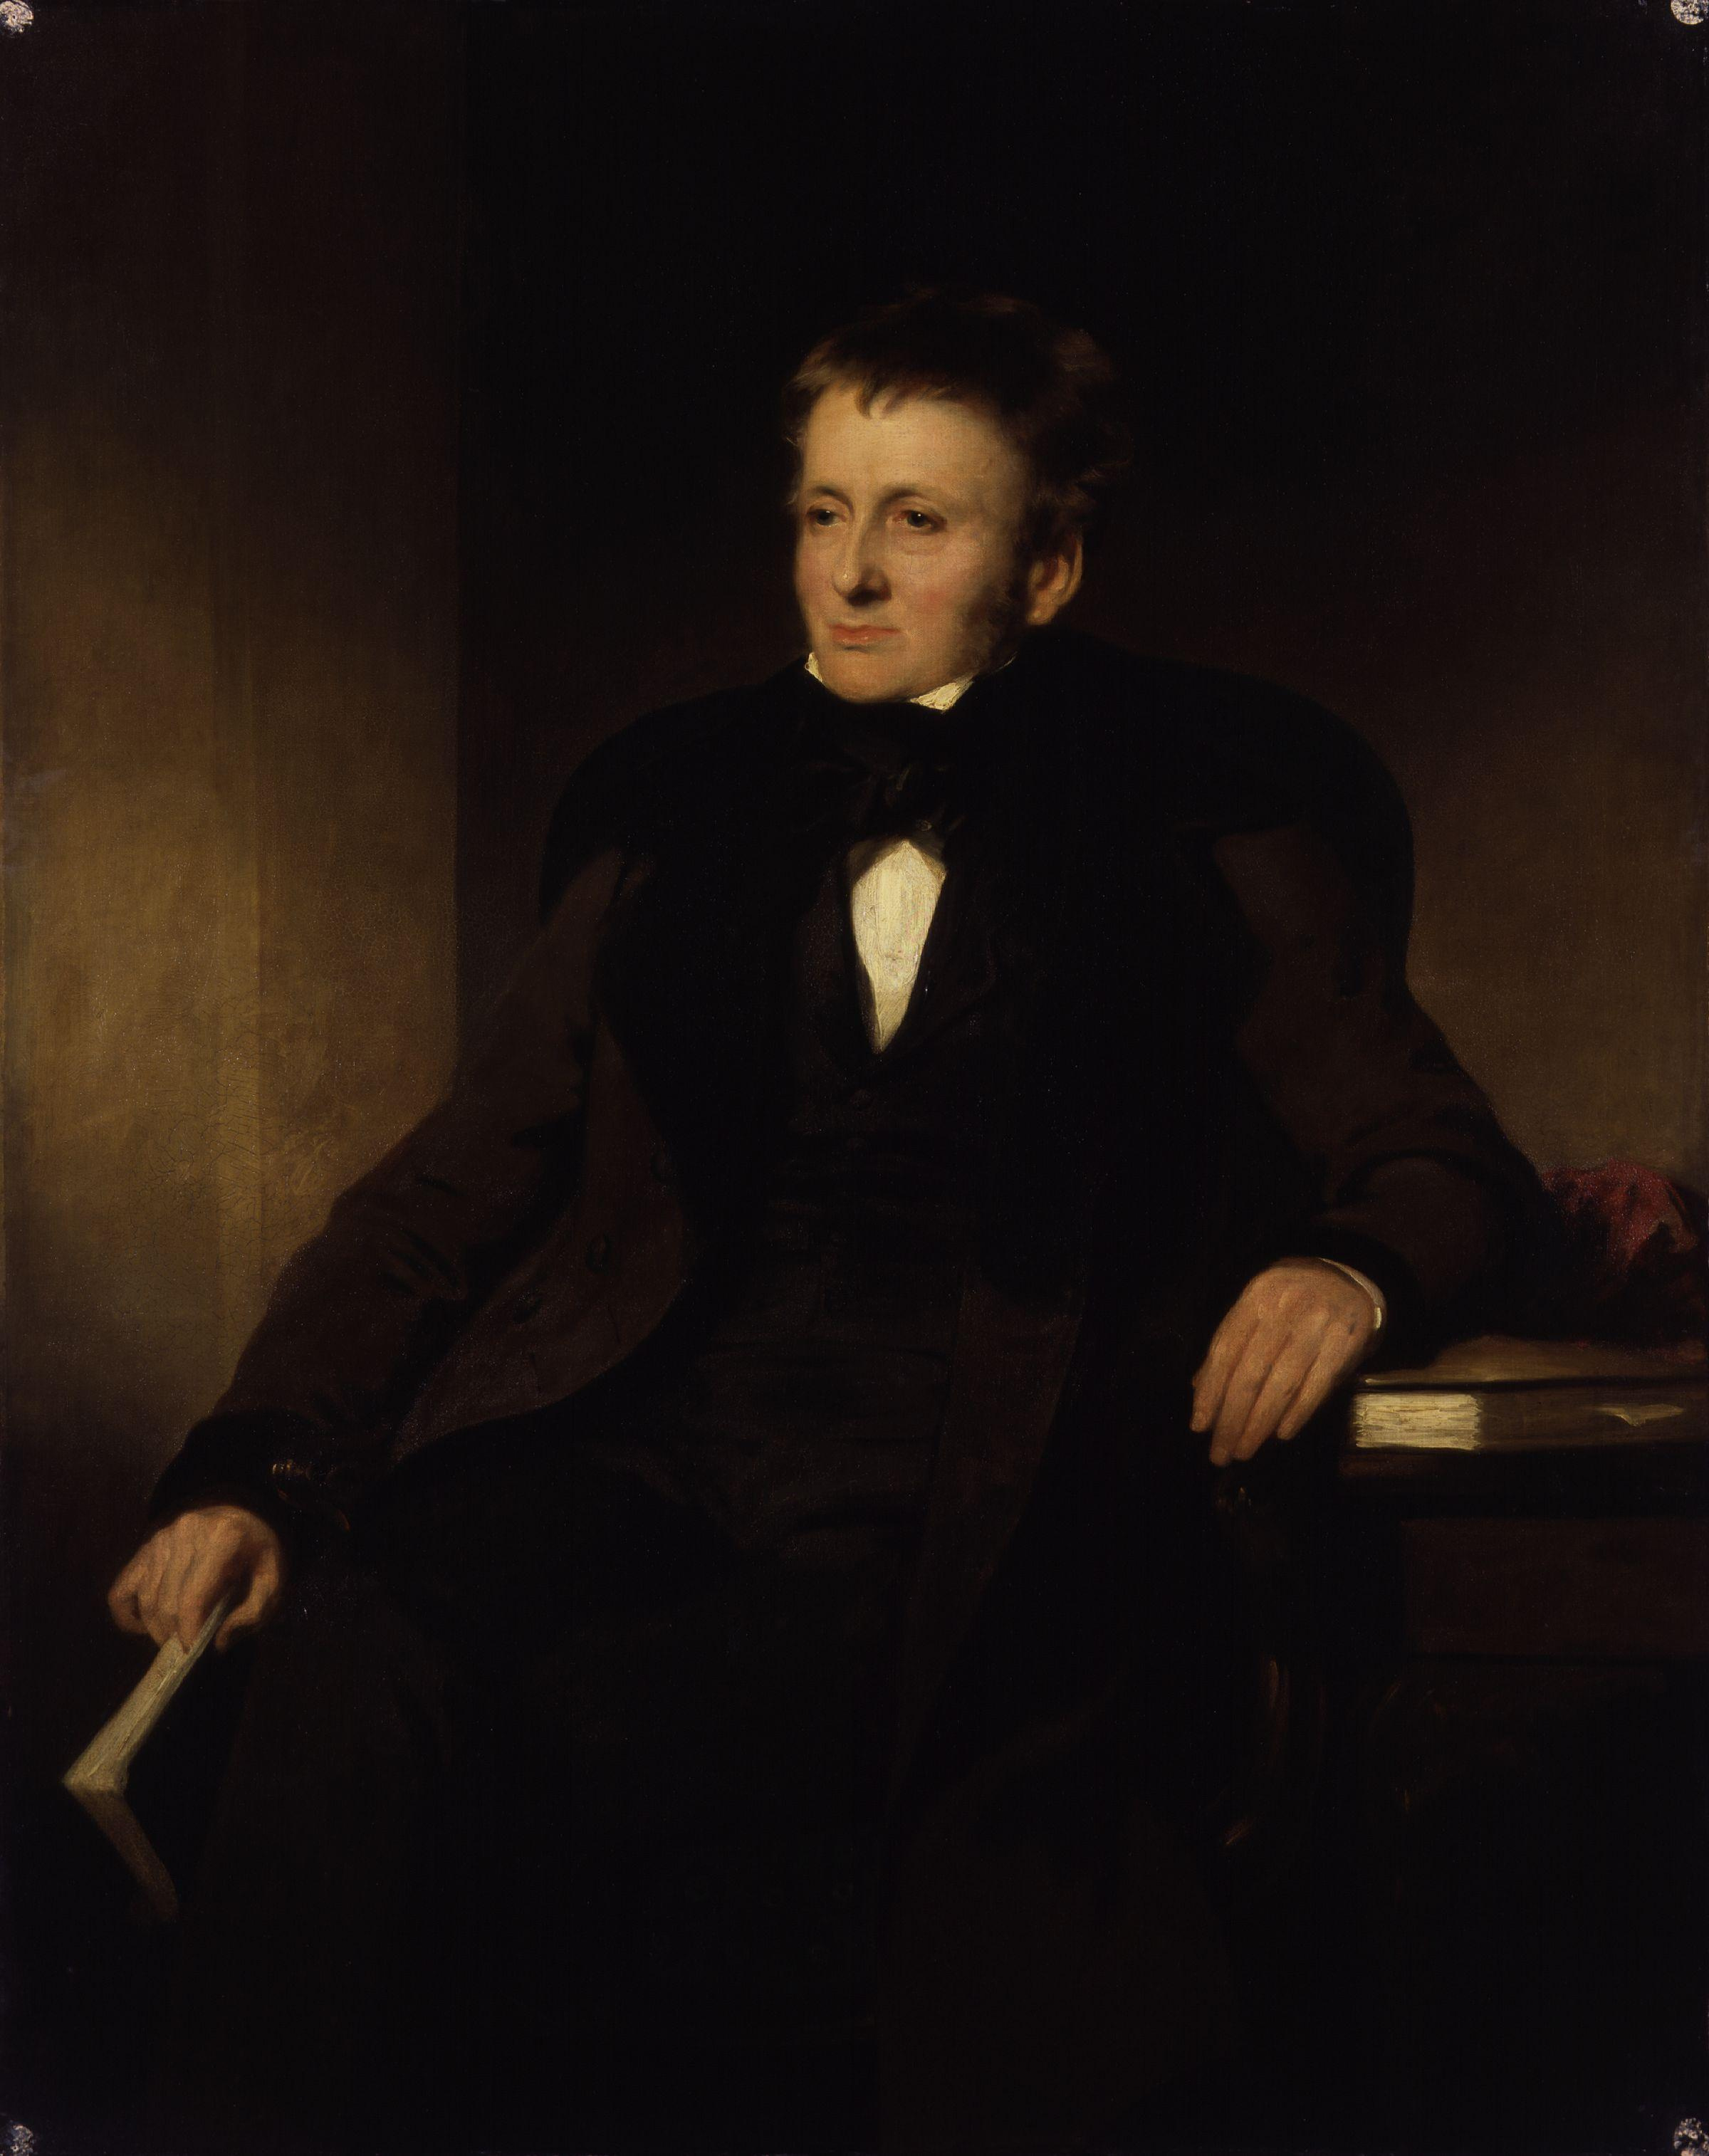 http://upload.wikimedia.org/wikipedia/commons/7/7c/Thomas_de_Quincey_by_Sir_John_Watson-Gordon.jpg